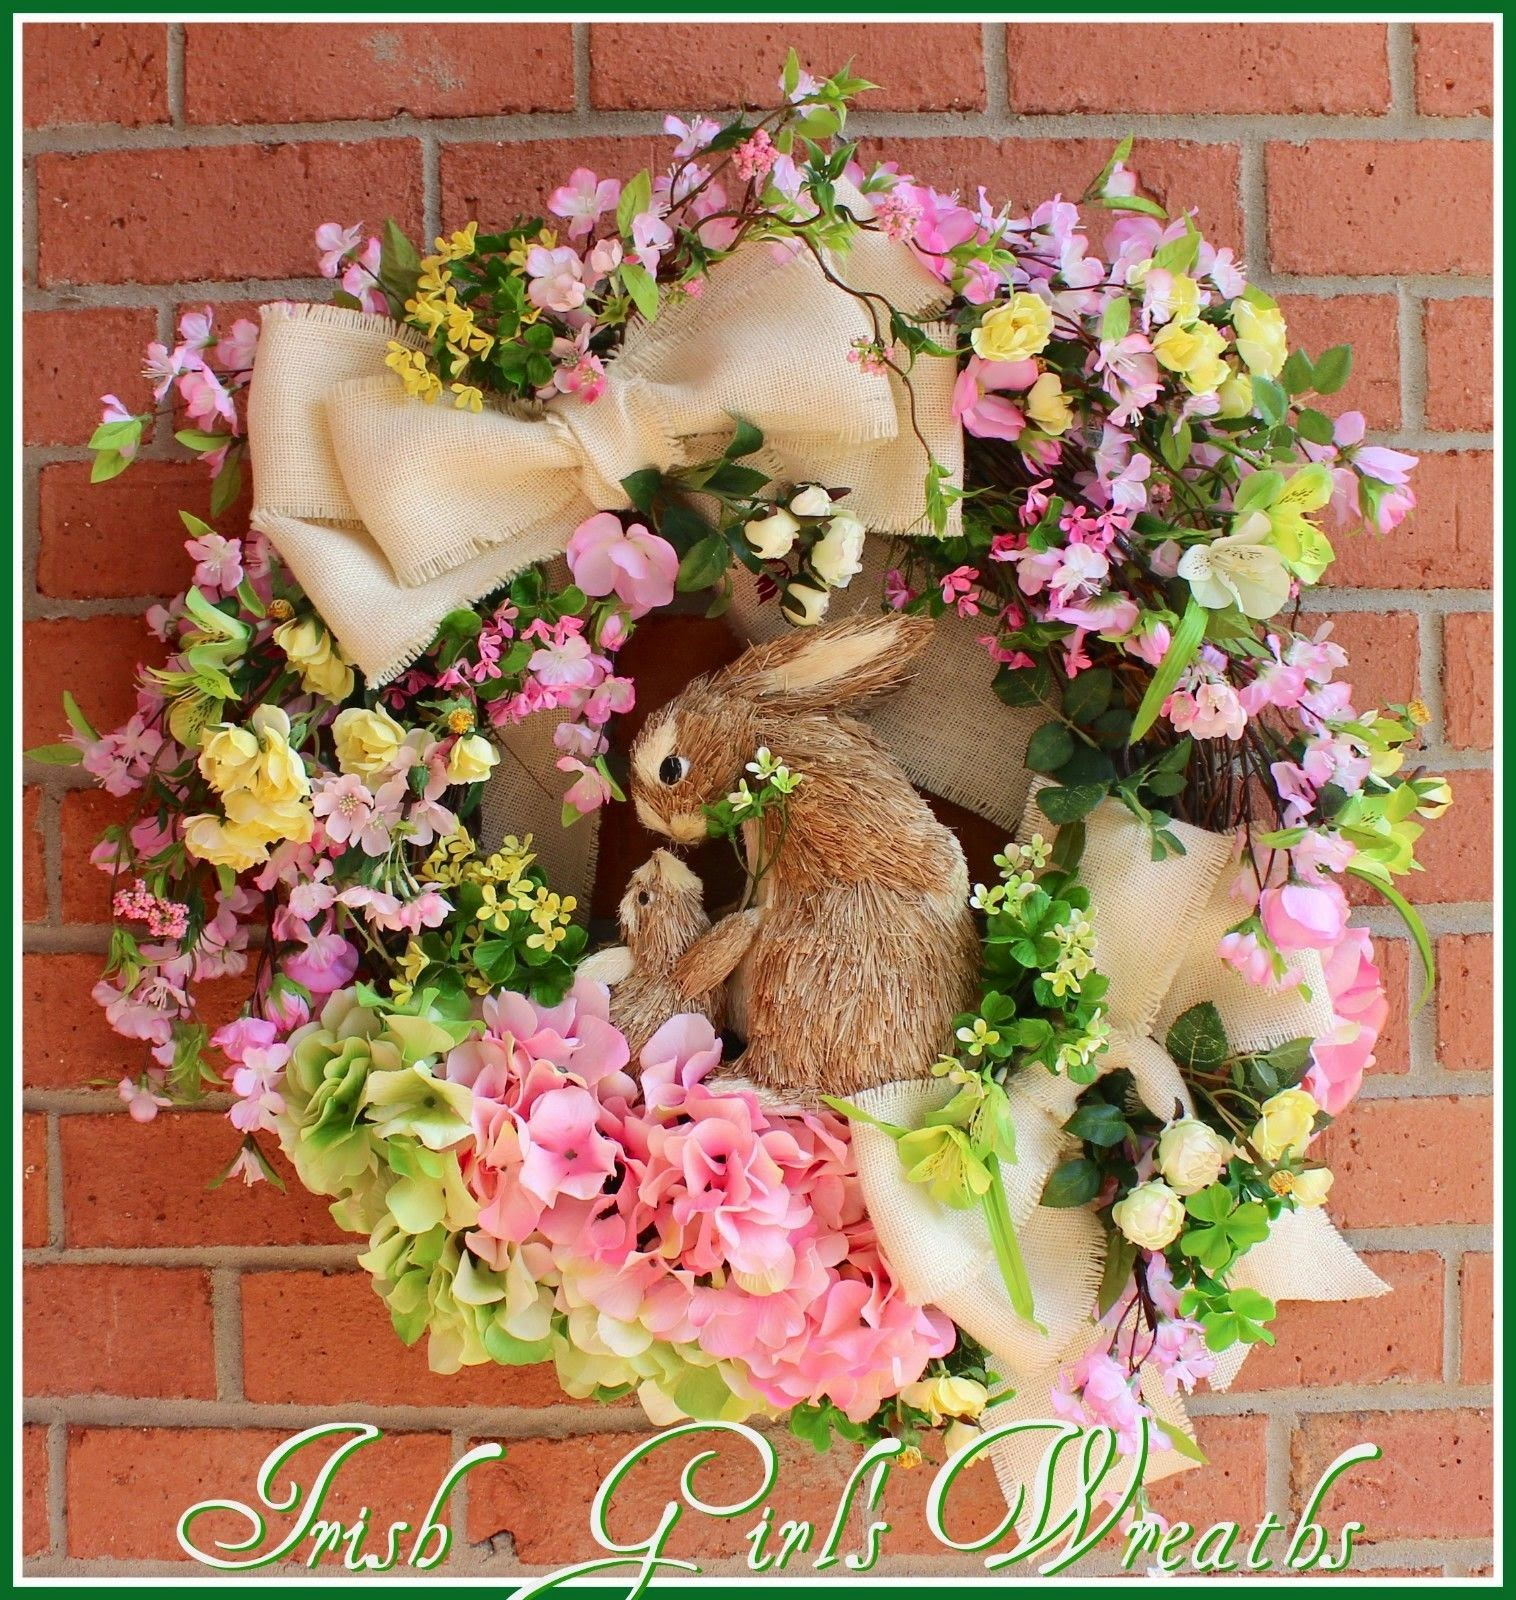 Cherry Blossom and Wild Rose Bunny Rabbit Spring Wreath, mother & baby, Easter, pink green yellow, Mother's Day, cottage